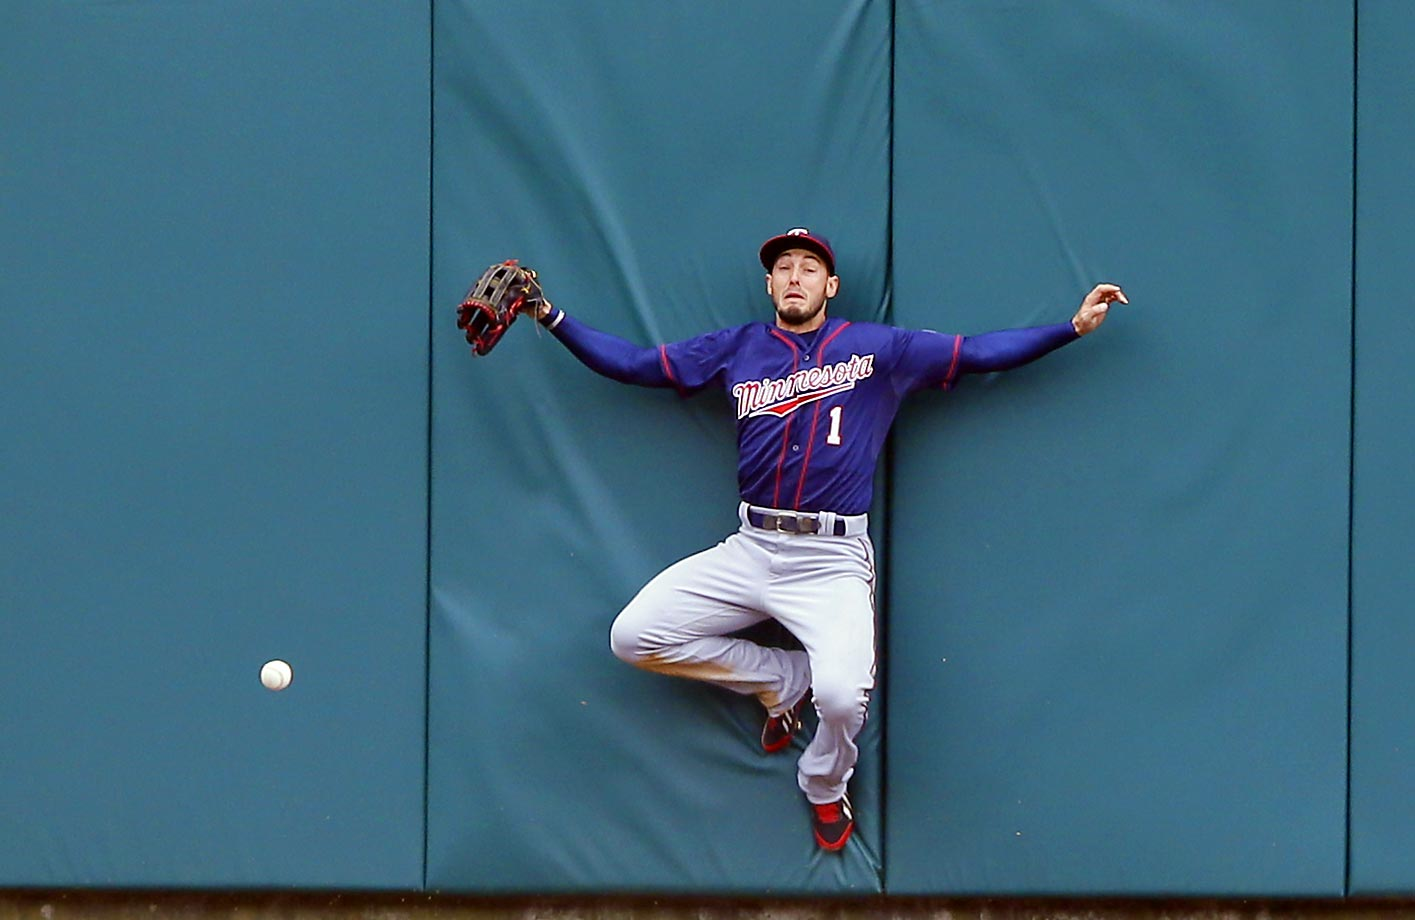 Jordan Schafer of the Minnesota Twins misplays a ball as Yoenis Cespedes of the Tigers raced to a triiple.